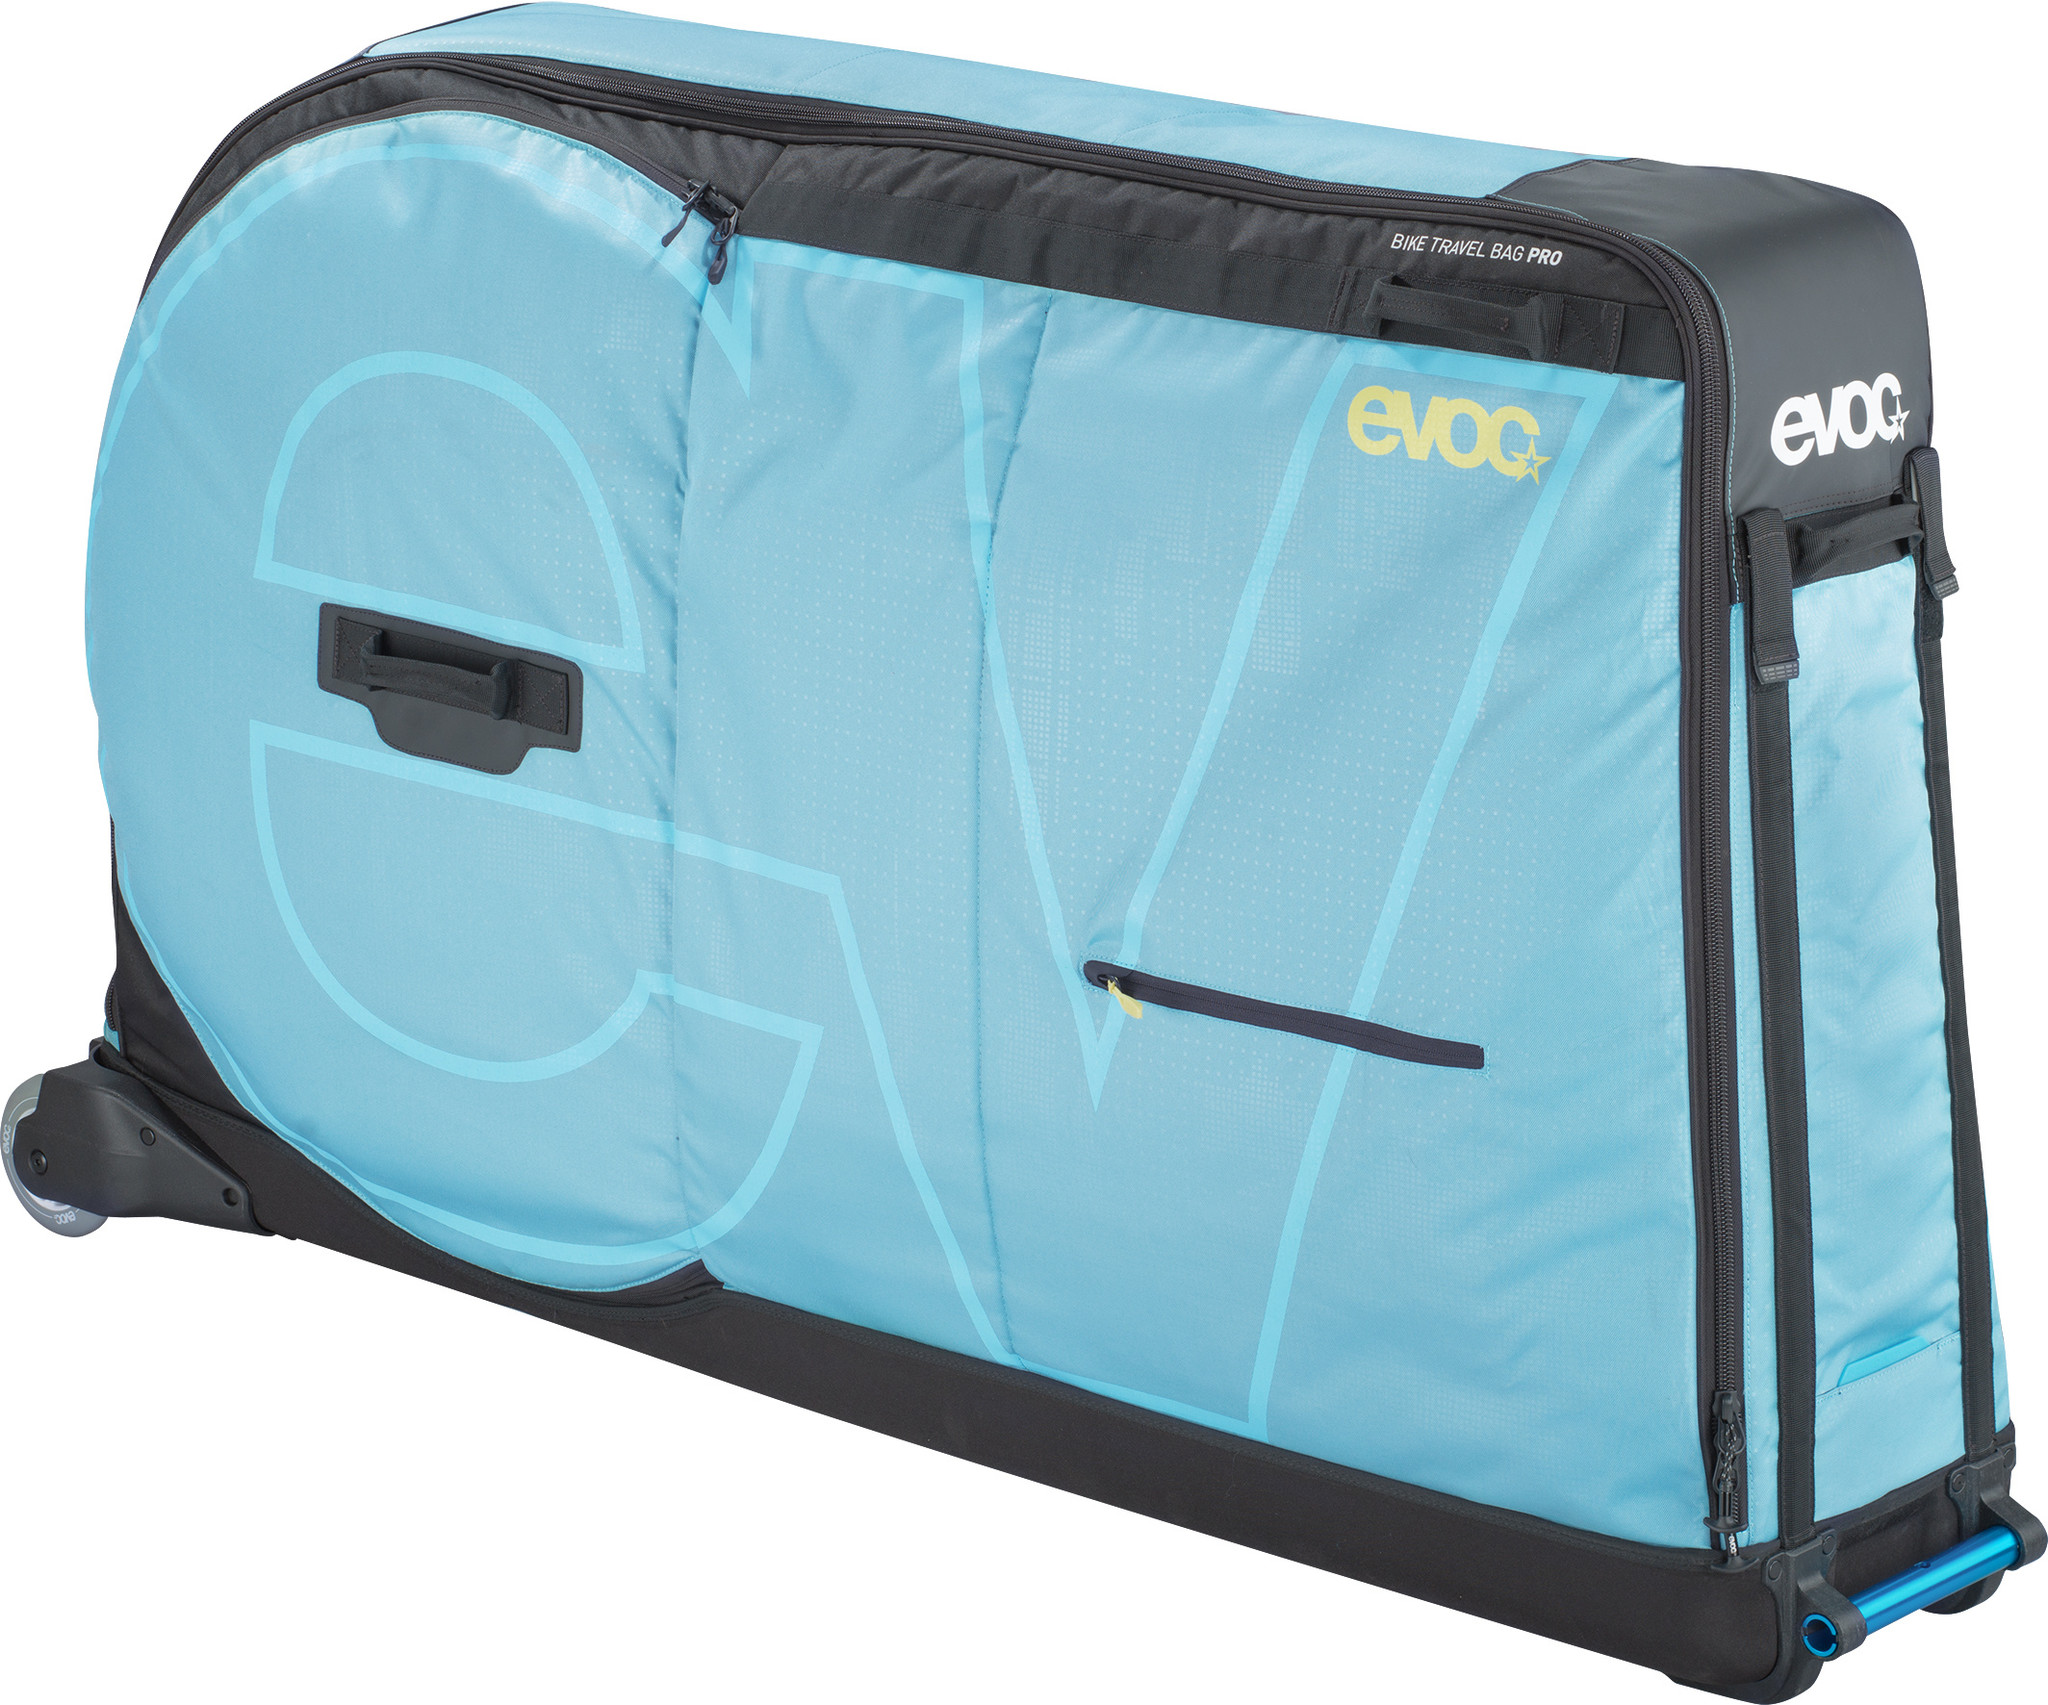 EVOC Bike Travel Bag Pro 2019 getest door het fietsblad Fiets